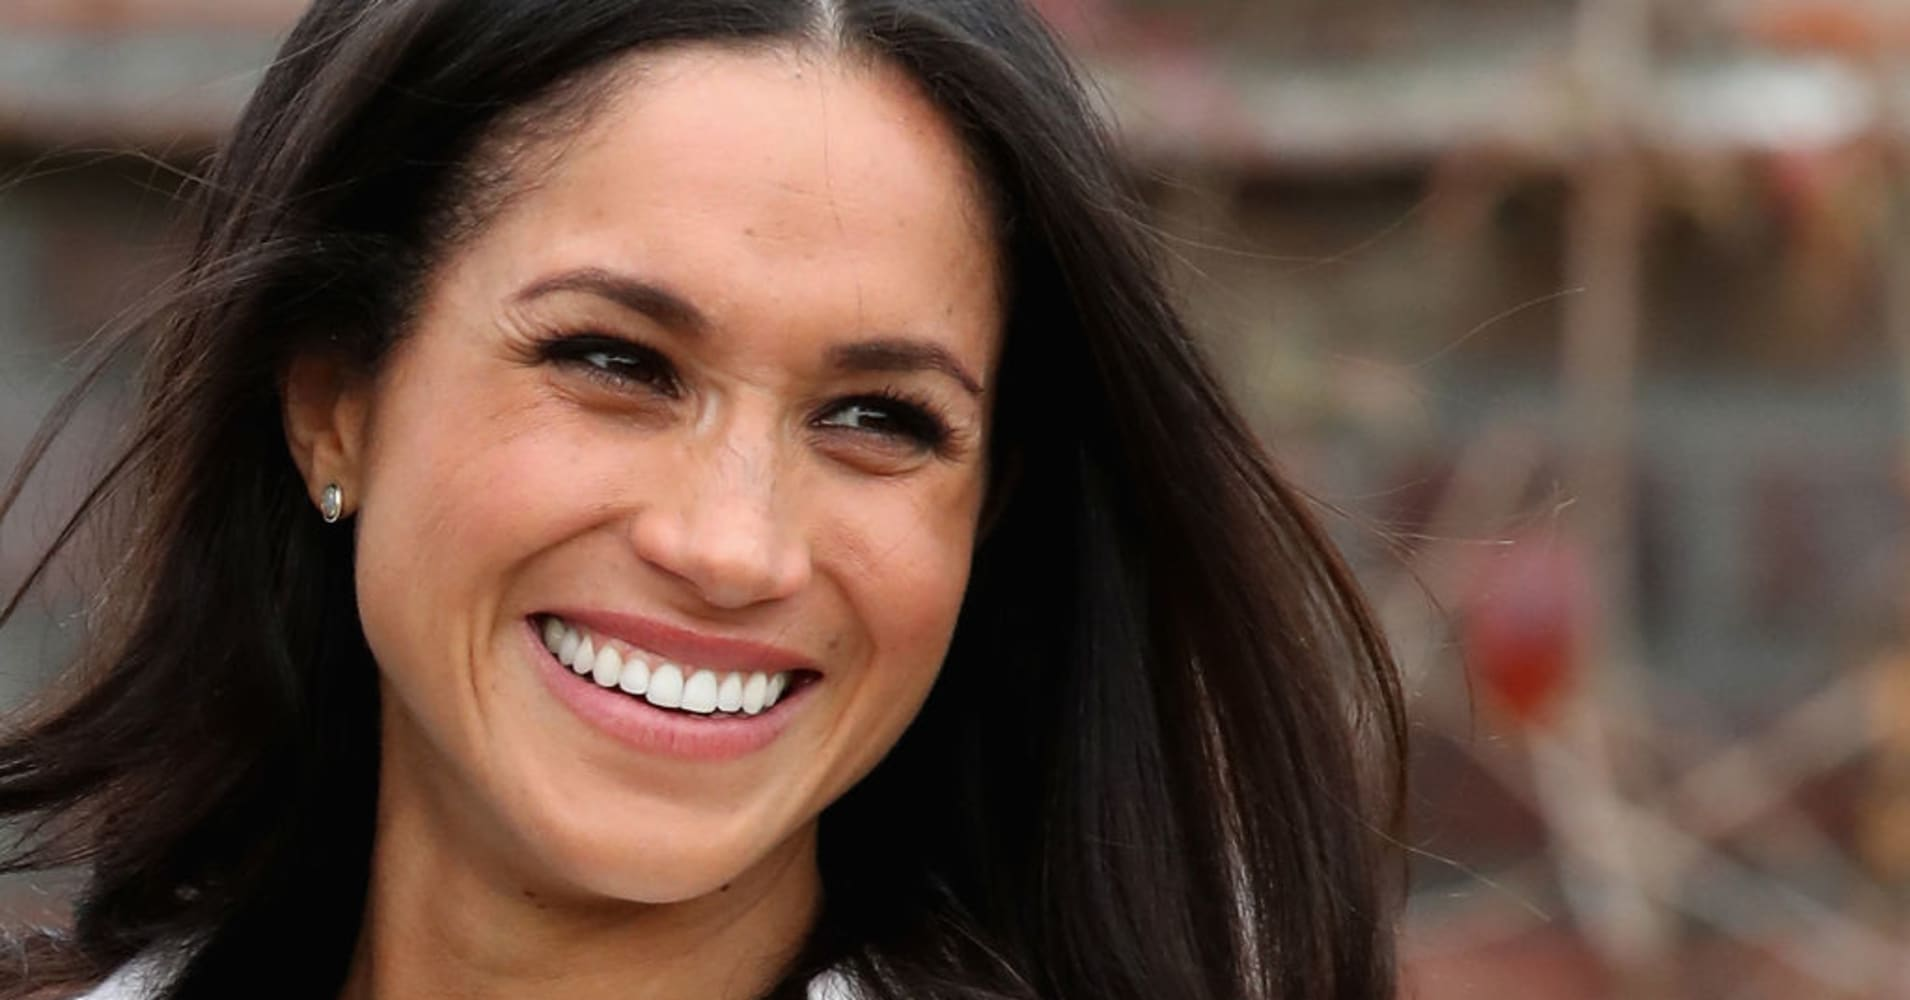 Meghan Markle during an official photocall to announce the engagement of Prince Harry and actress Meghan Markle at The Sunken Gardens at Kensington Palace